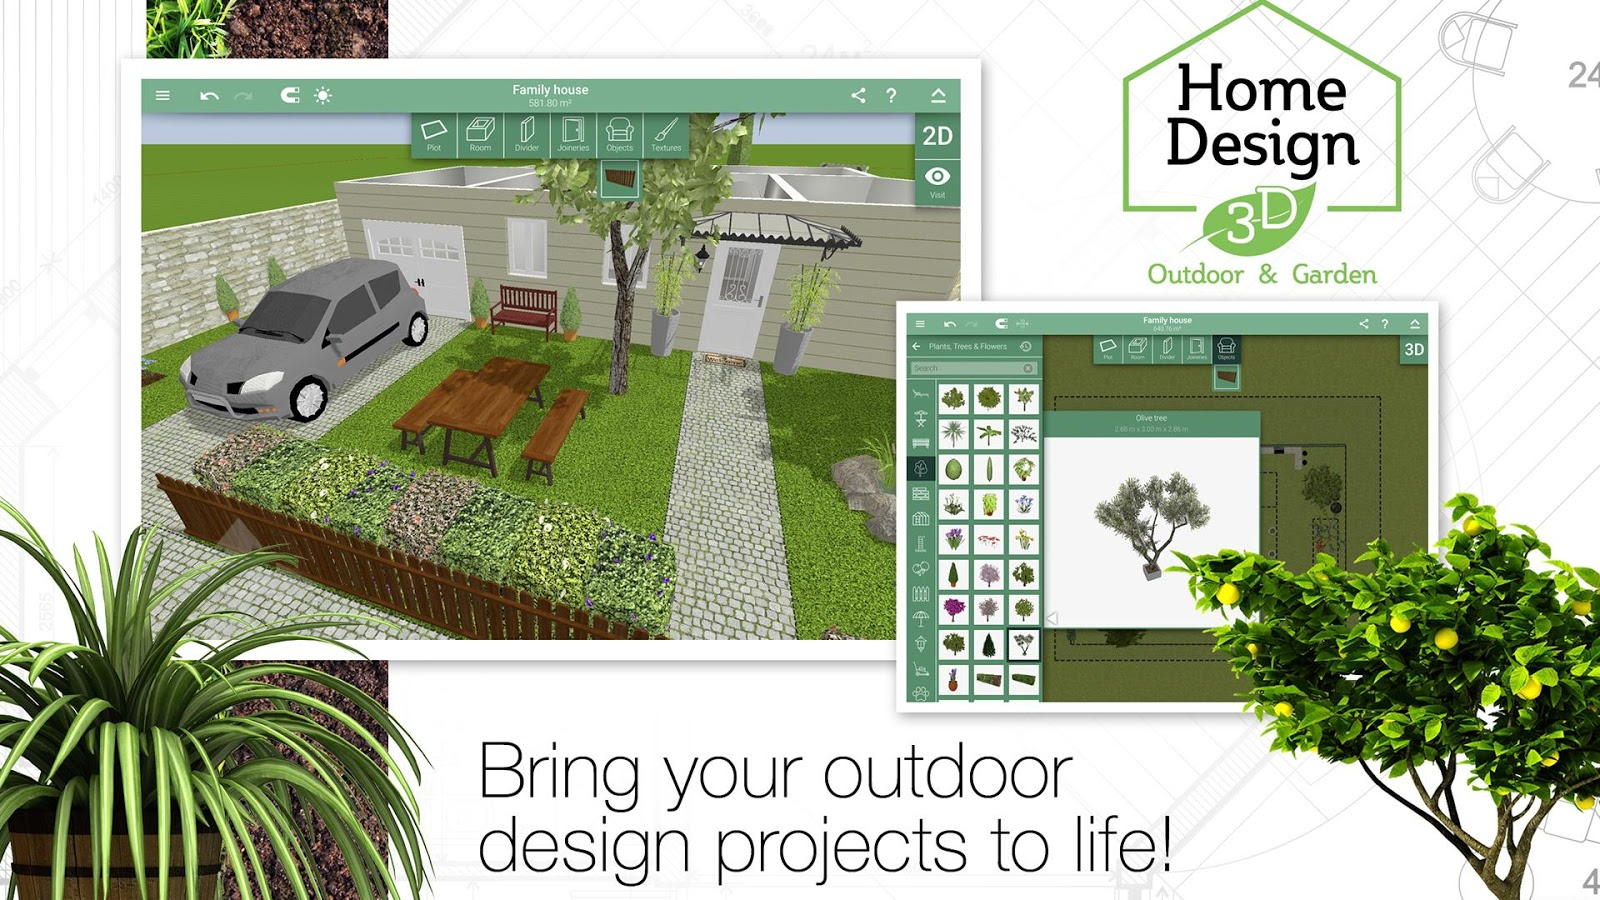 Home design 3d outdoor garden android apps on google play for Best house designs with garden